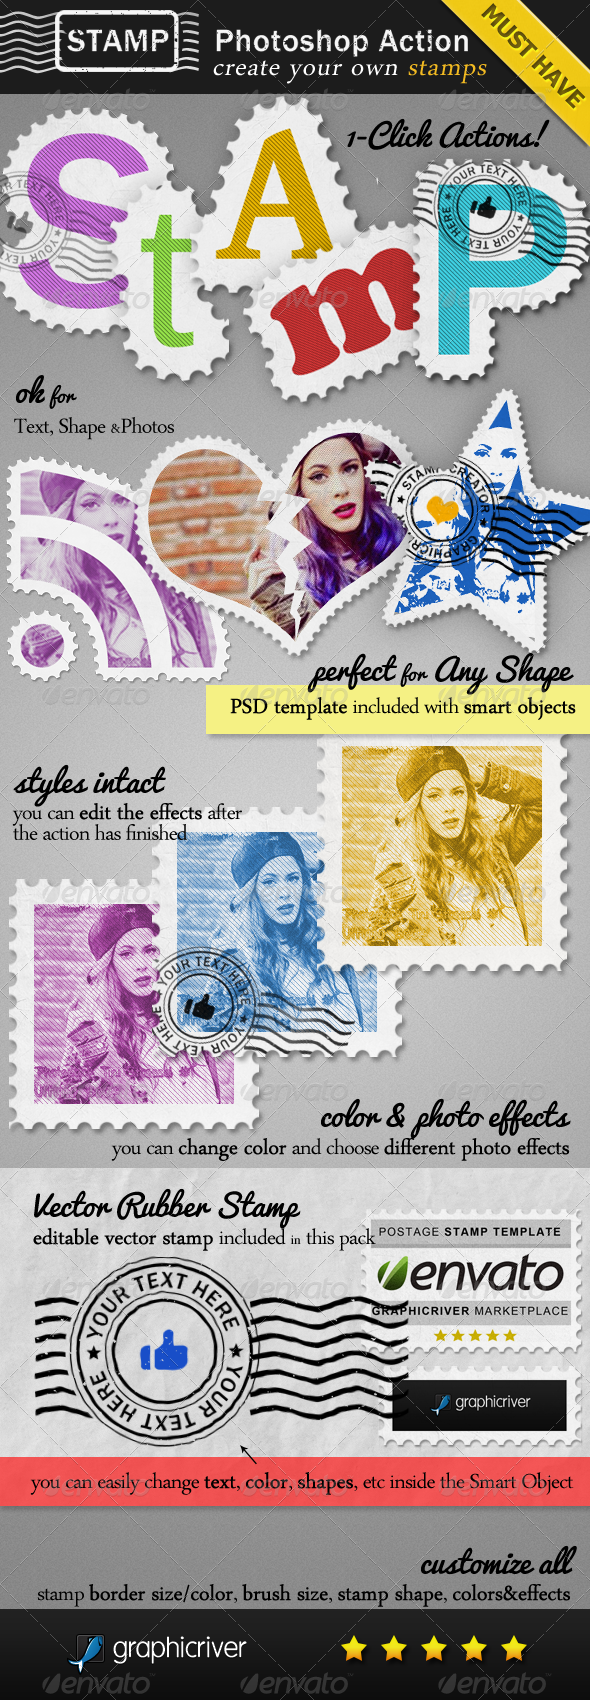 GraphicRiver Stamp Creator 5745750